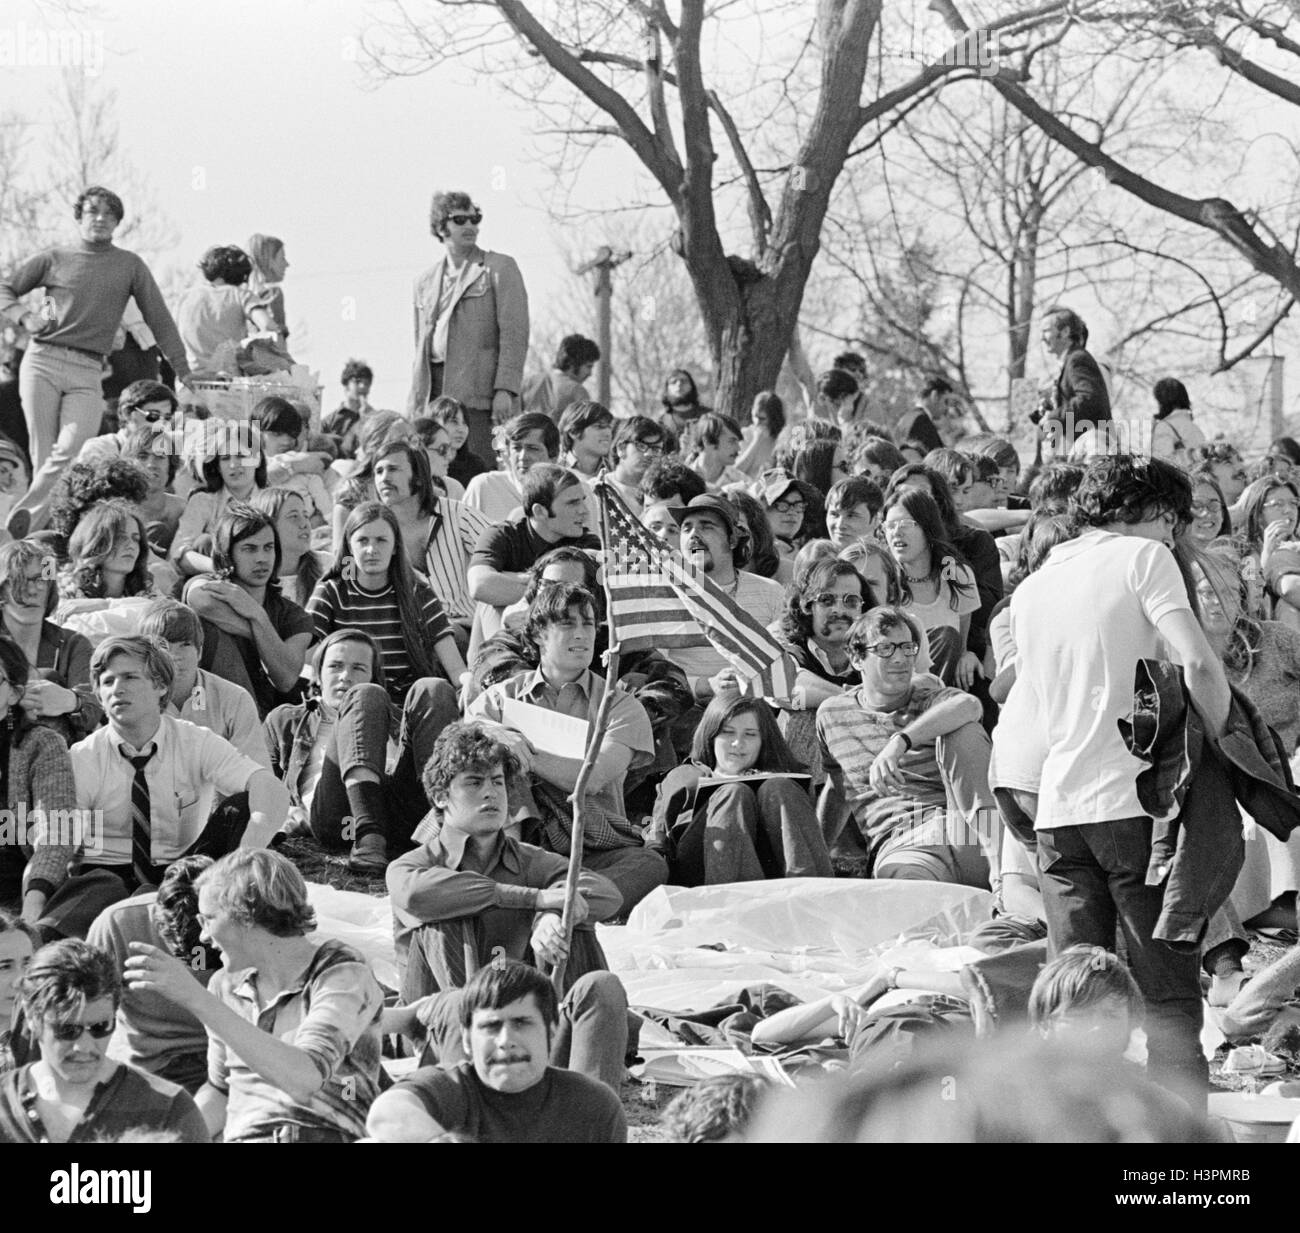 1970s APRIL 22 1970 CROWD ATTENDING THE FIRST EARTH DAY CELEBRATION FAIRMONT PARK PHILADELPHIA PENNSYLVANIA USA - Stock Image